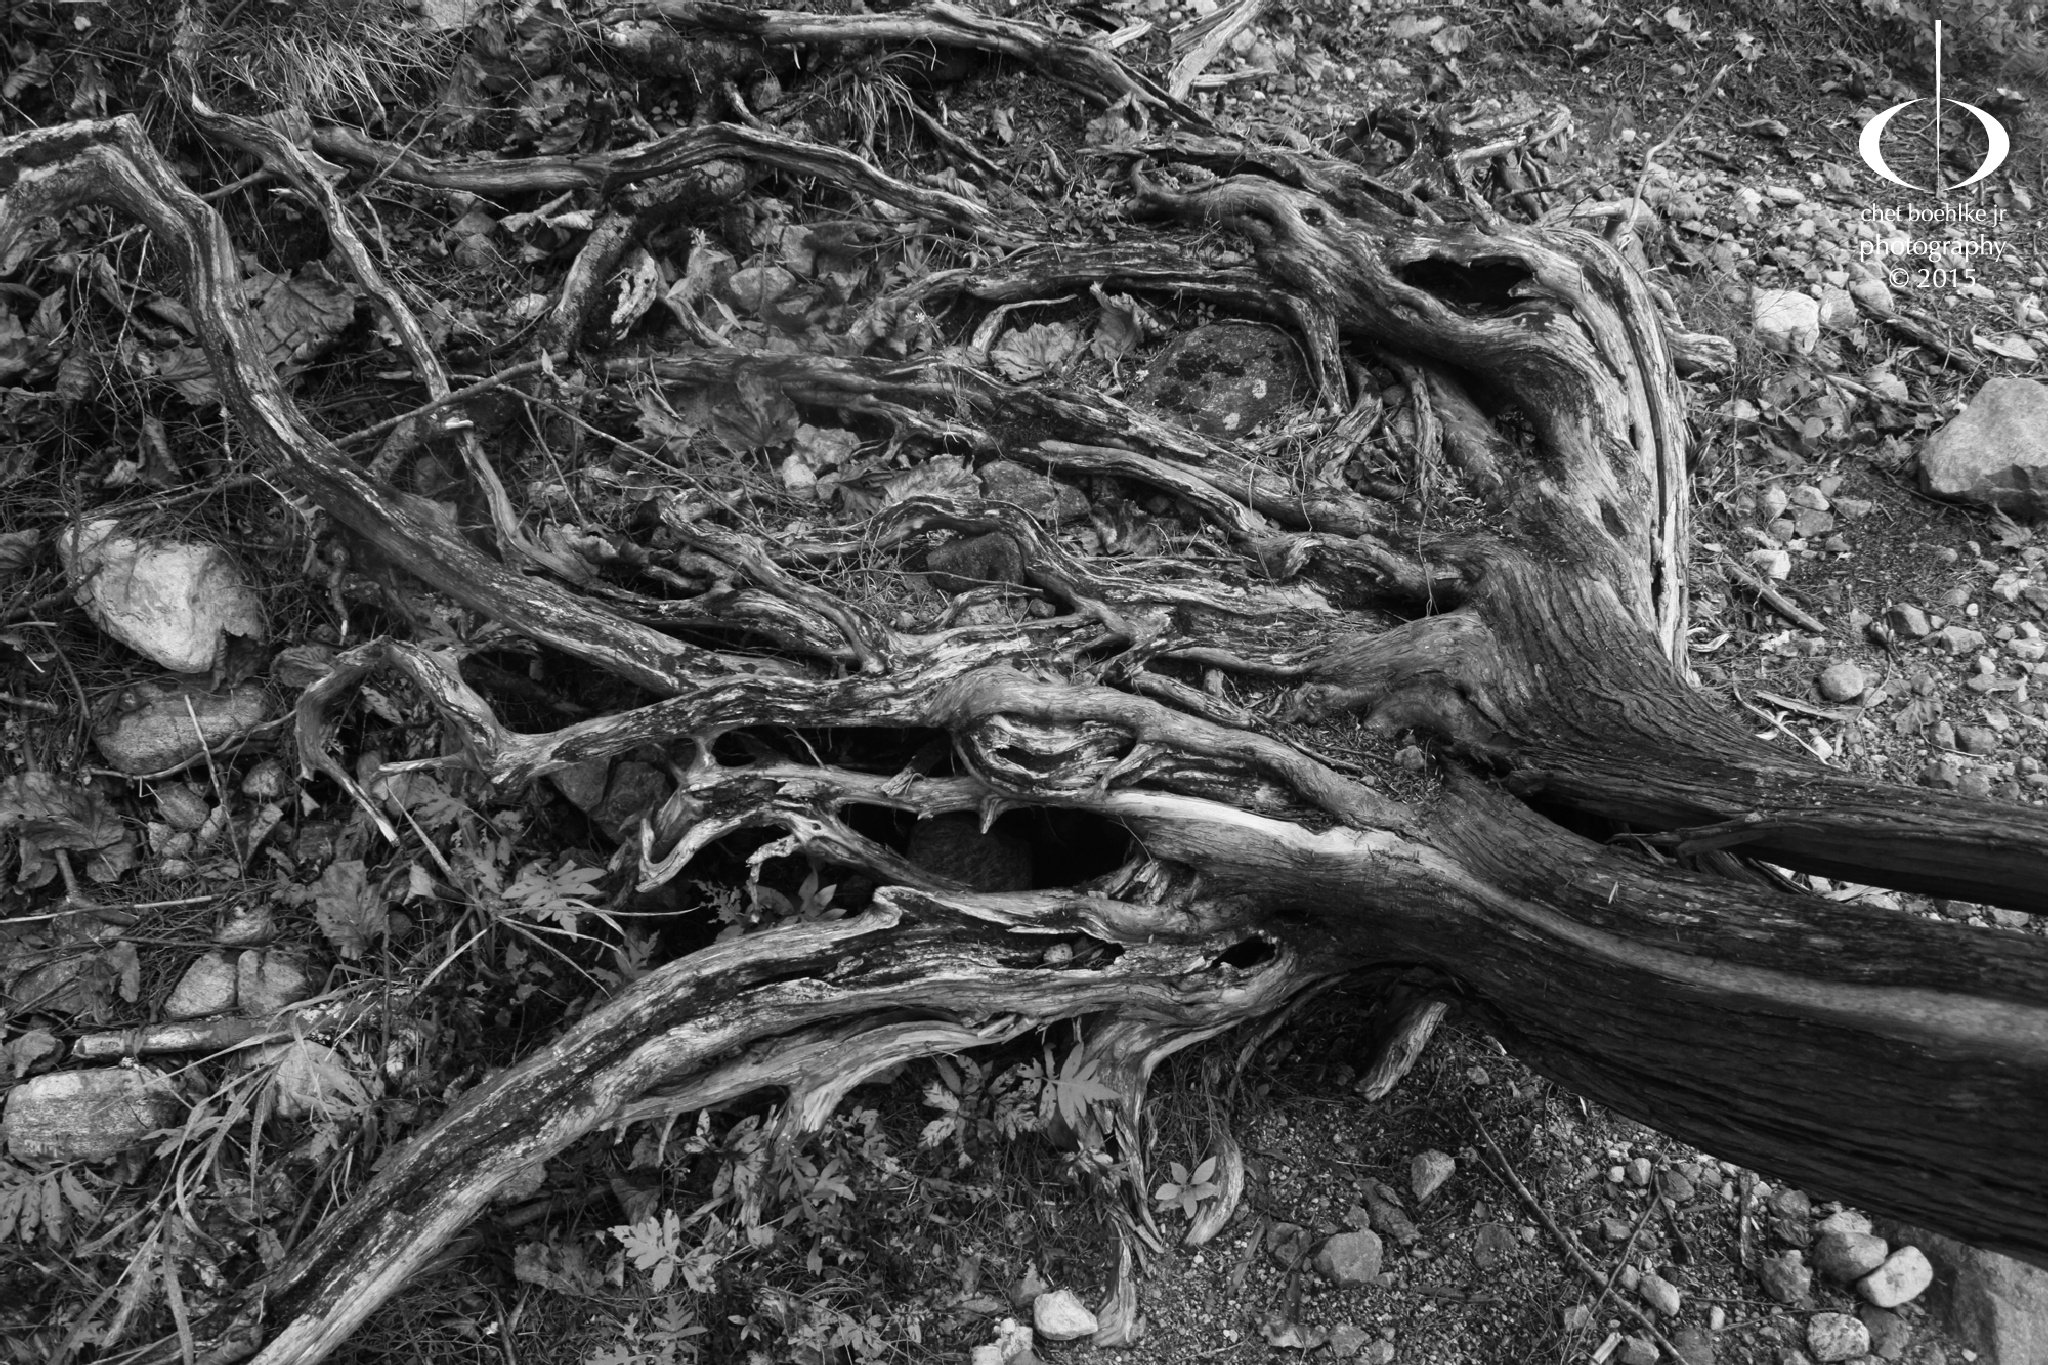 the root cause by cboehlkejr